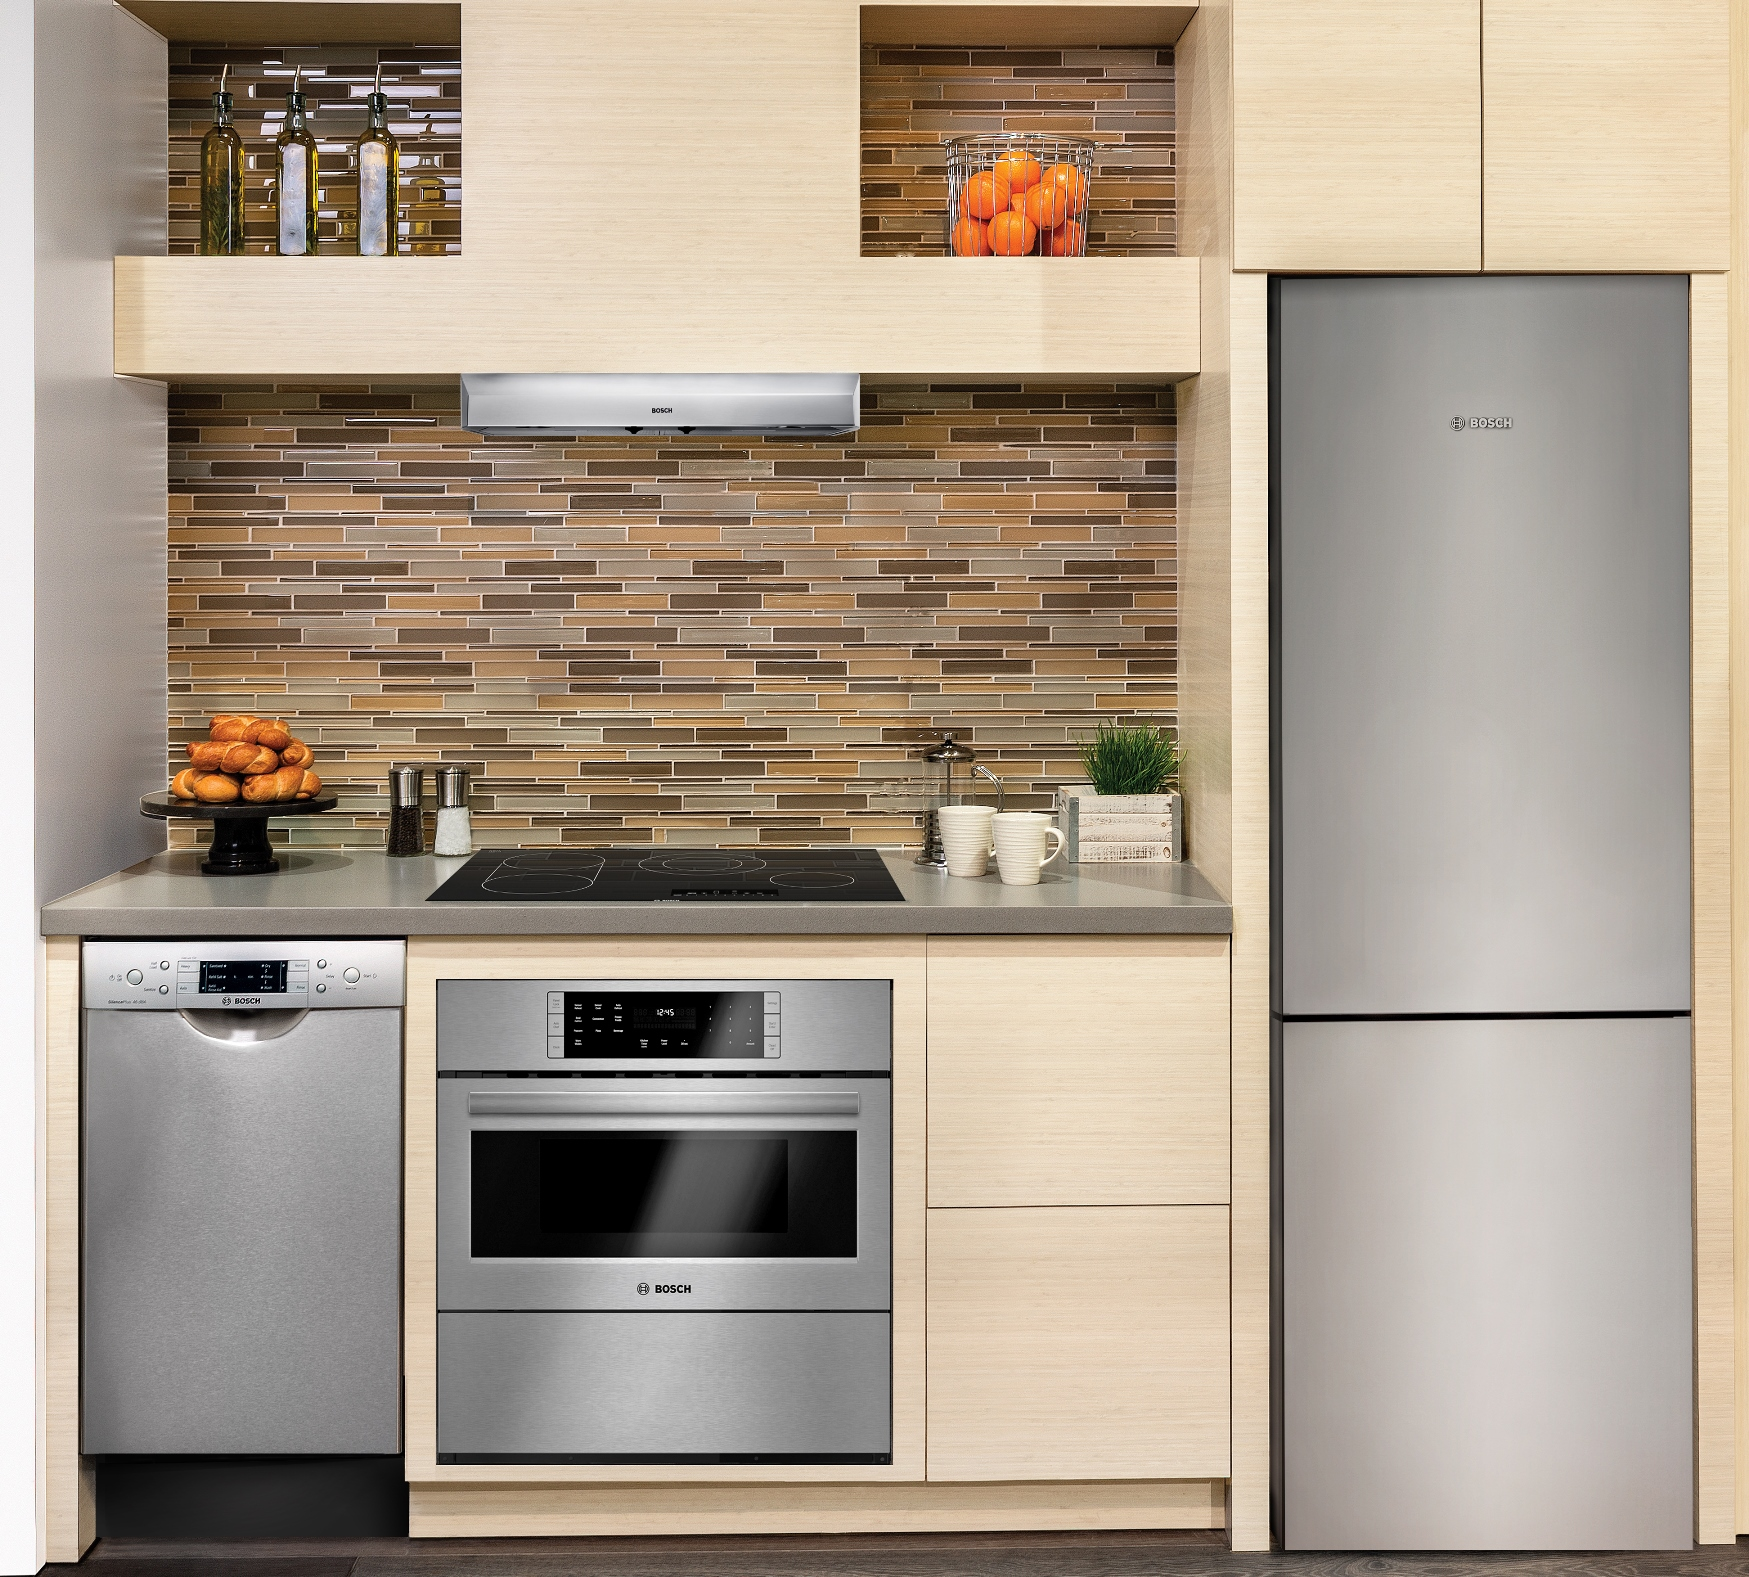 2017 Kitchen Trend Incredible Shrinking Appliances Mike